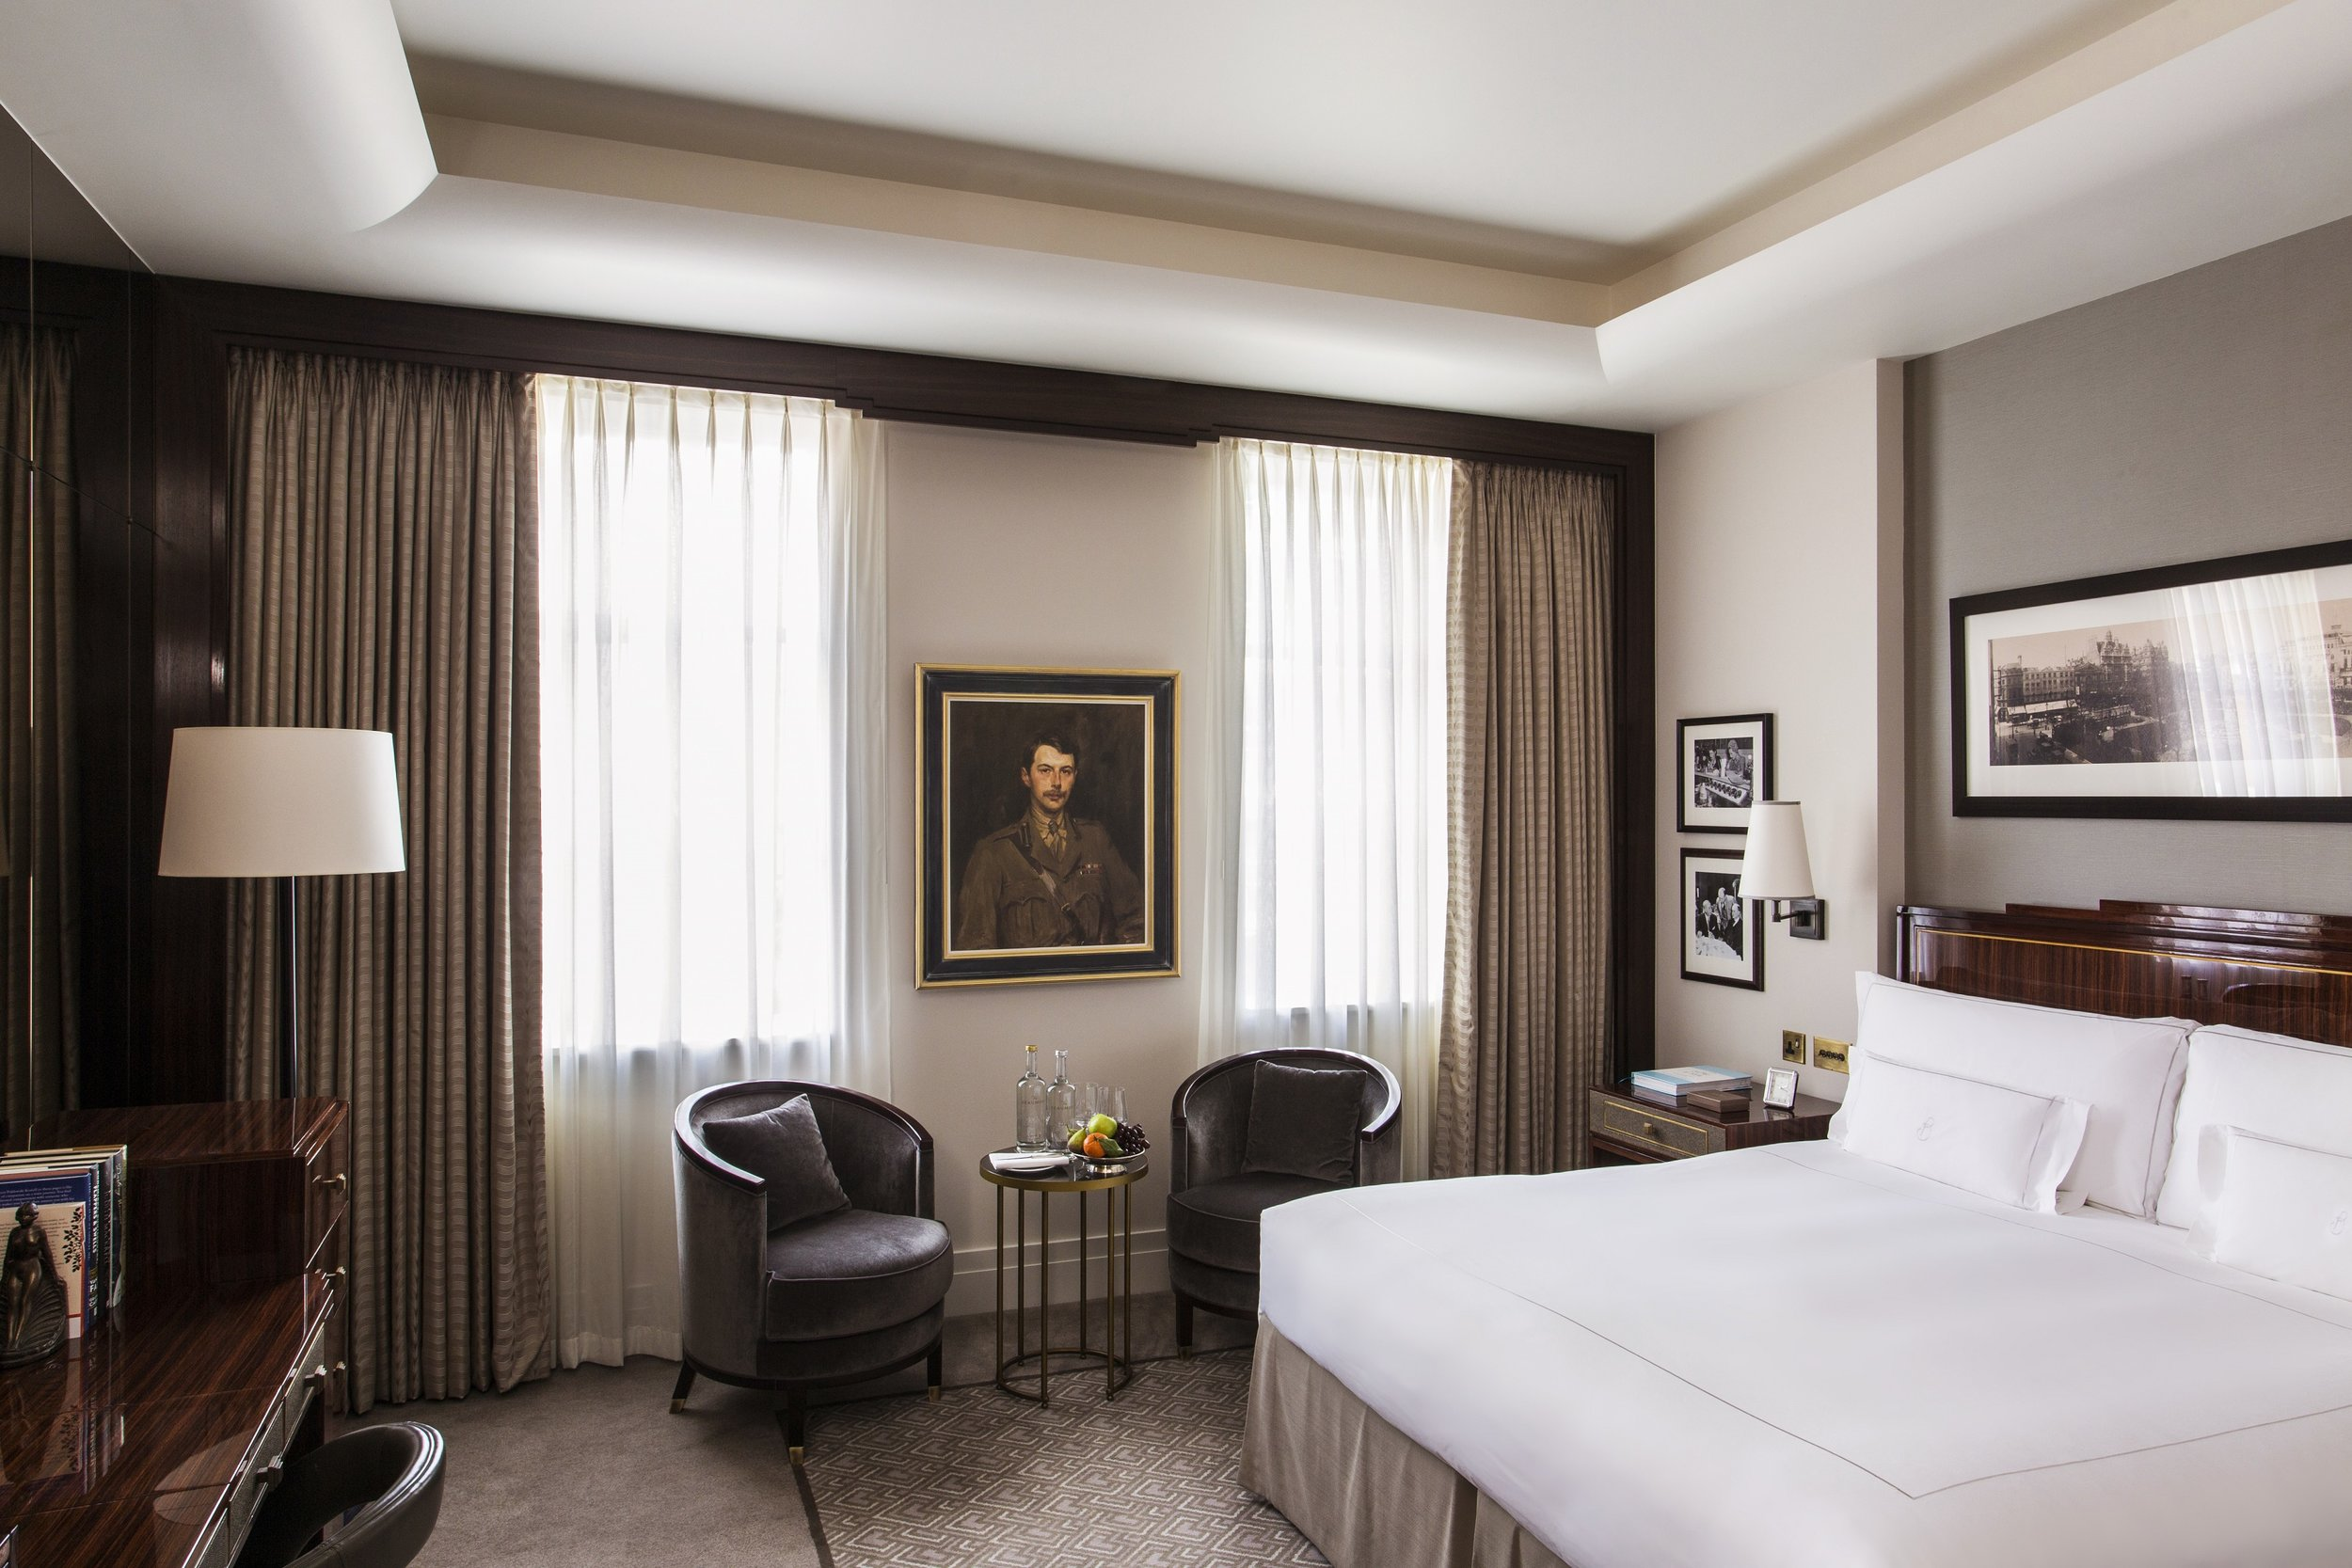 Rooms are spacious, with a subdued color palette and lots of original art